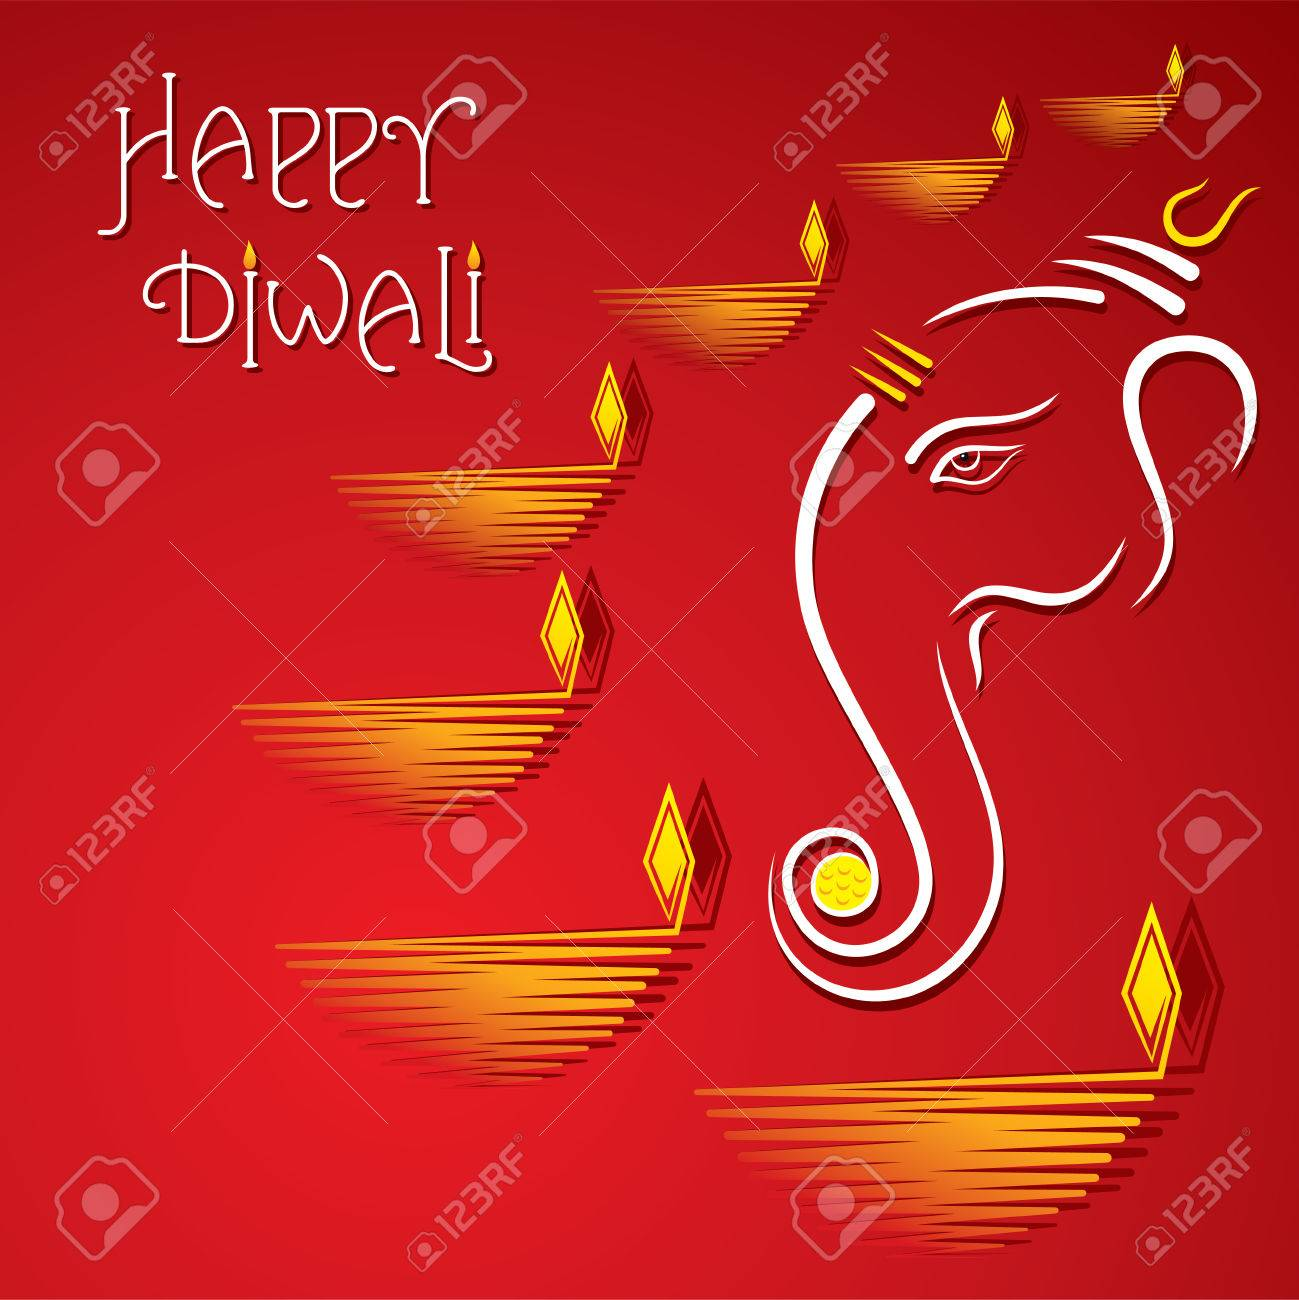 Happy diwali greeting card design vector royalty free cliparts happy diwali greeting card design vector stock vector 46135214 m4hsunfo Choice Image